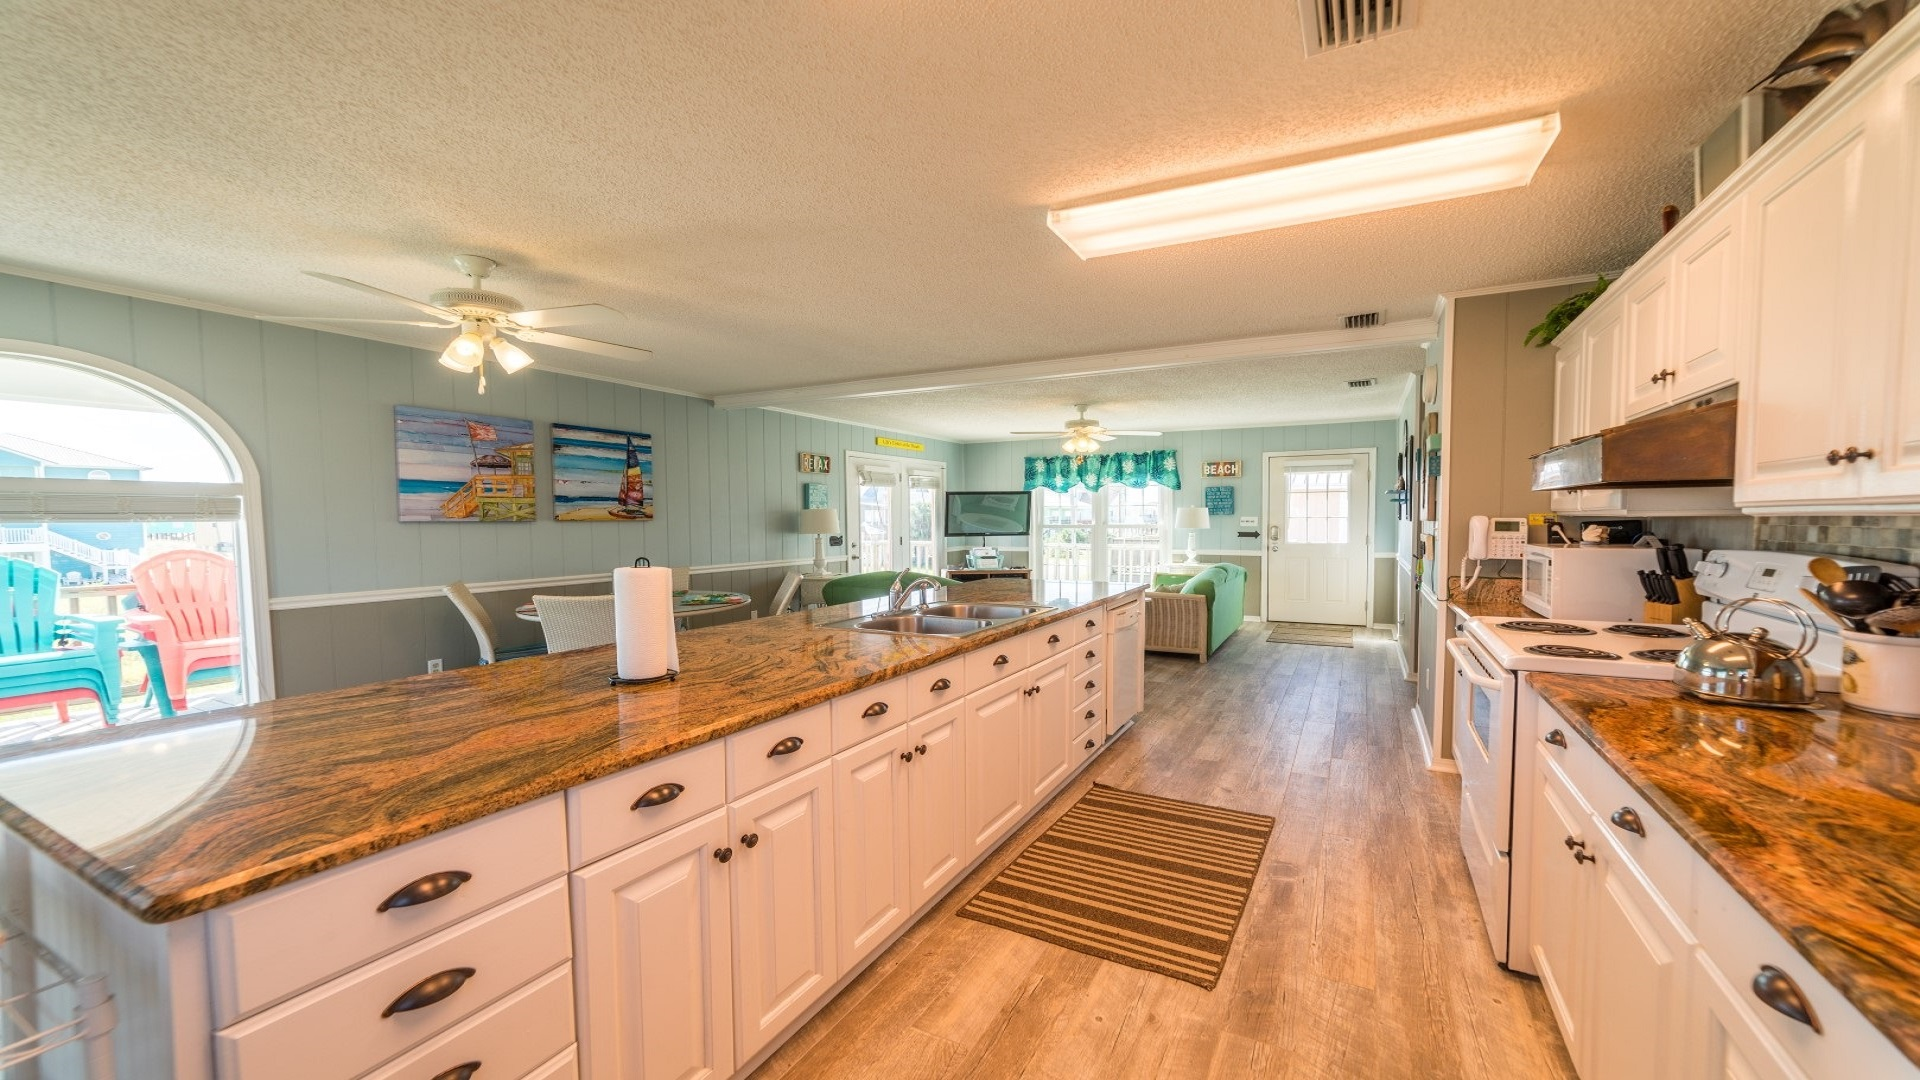 Fully equipped kitchen with everything you will need.